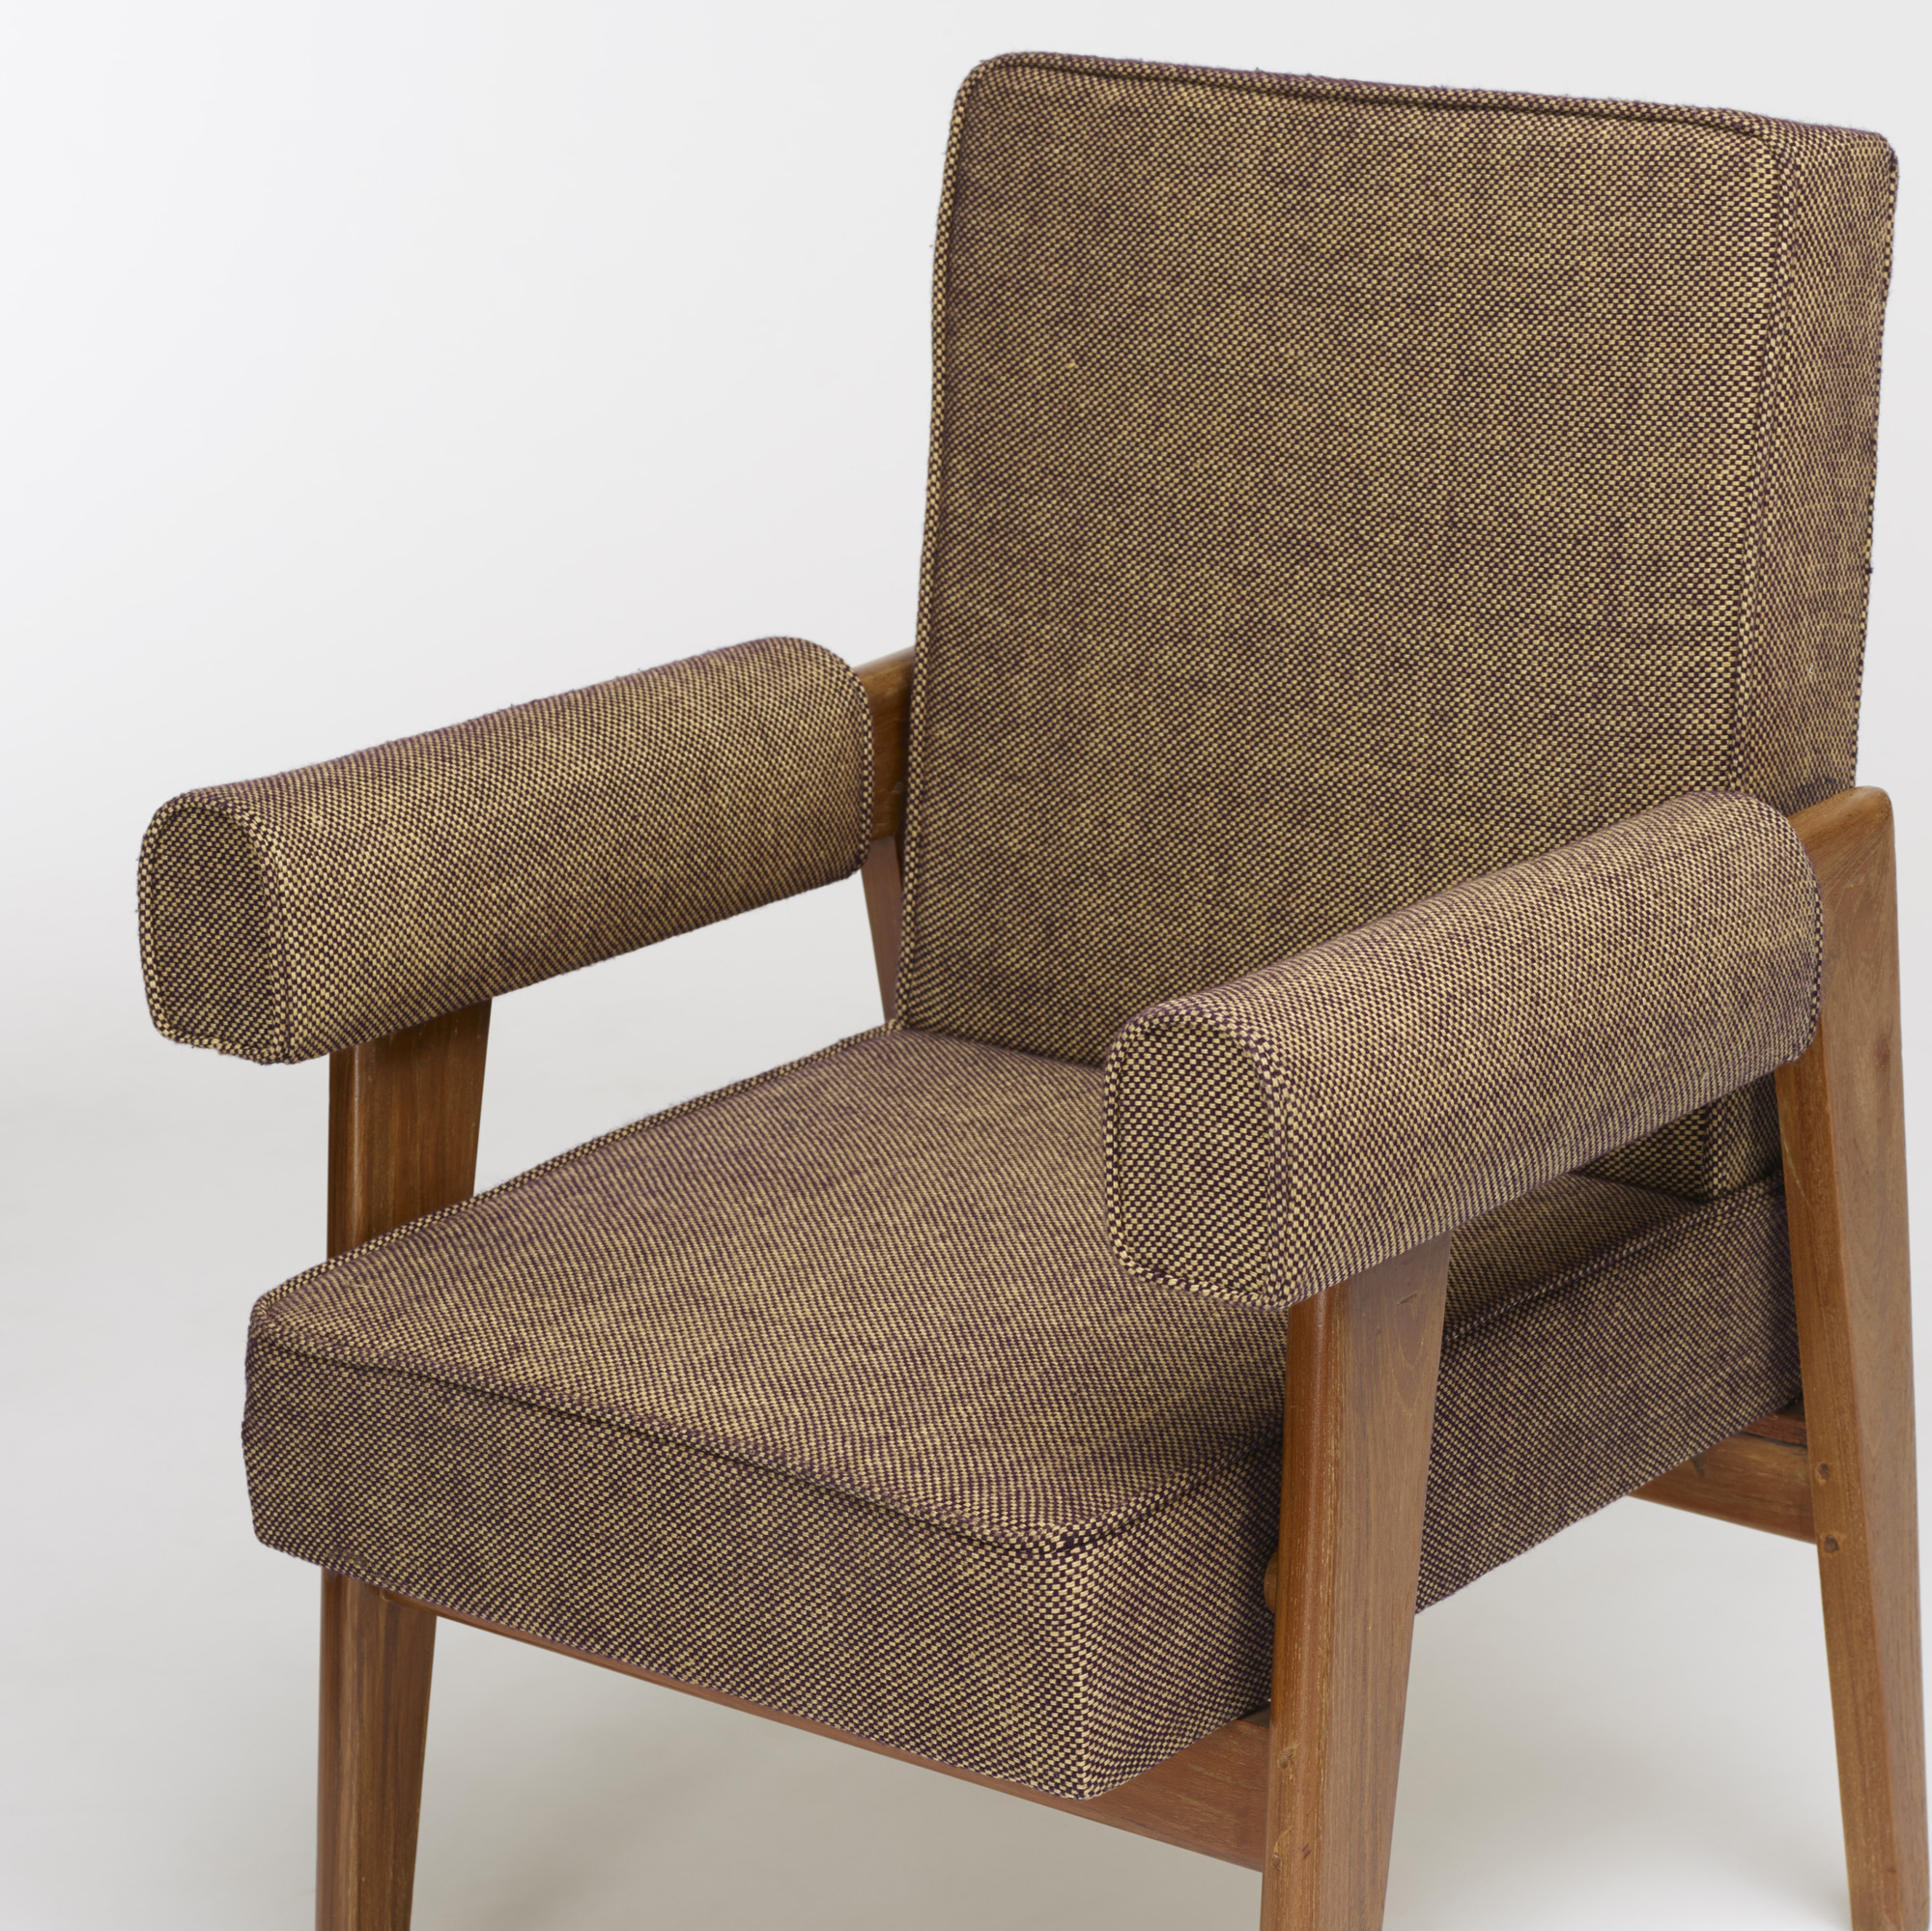 114: Le Corbusier and Pierre Jeanneret / pair of armchairs from the High Court, Chandigarh (4 of 4)